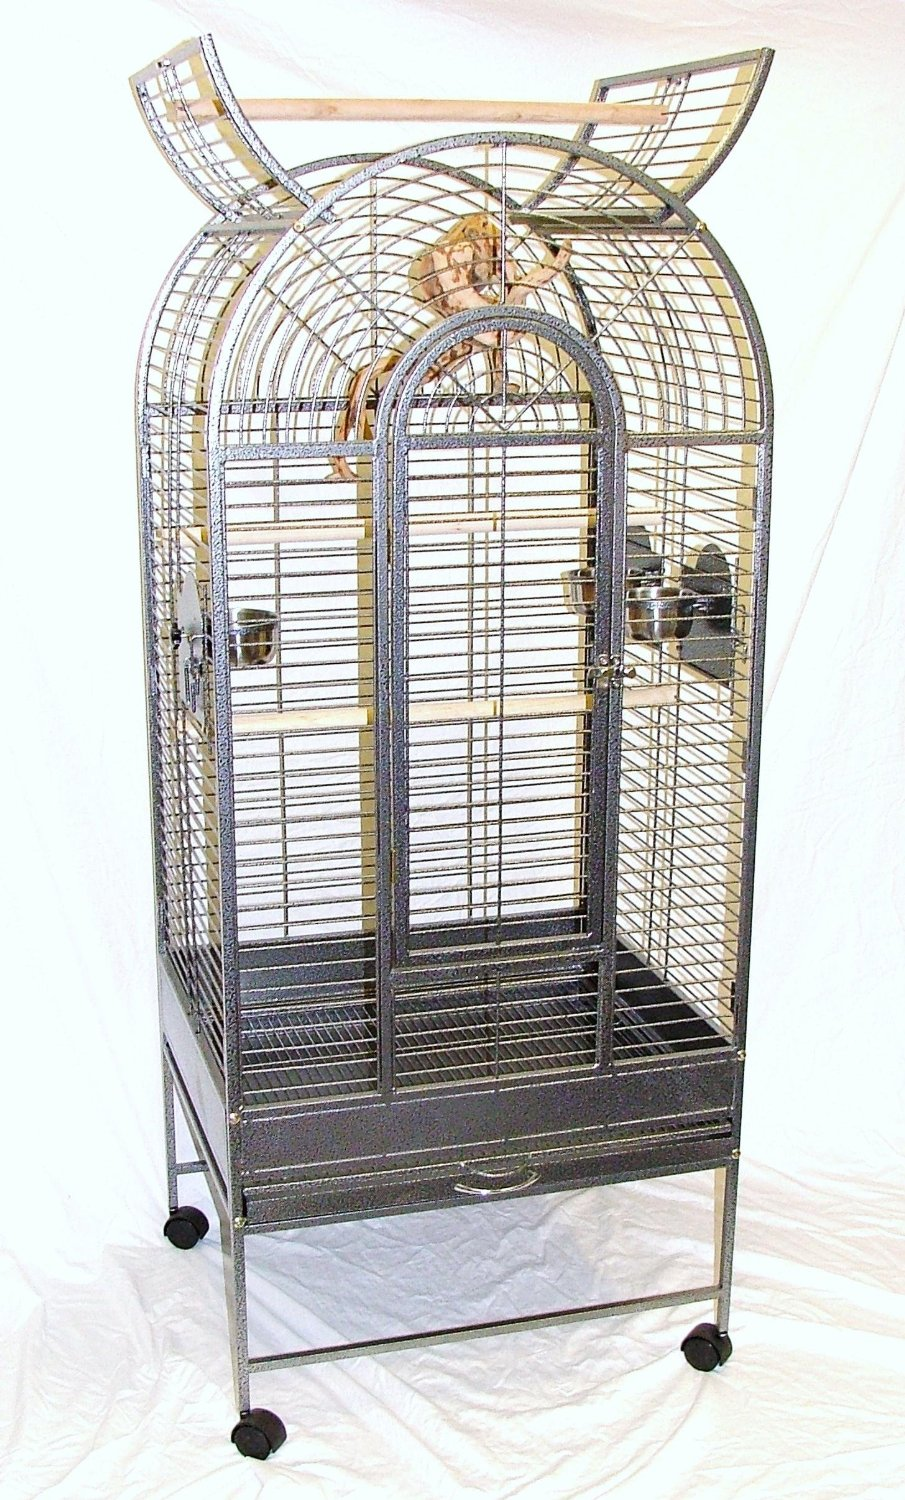 Click to see more images of the Cage.